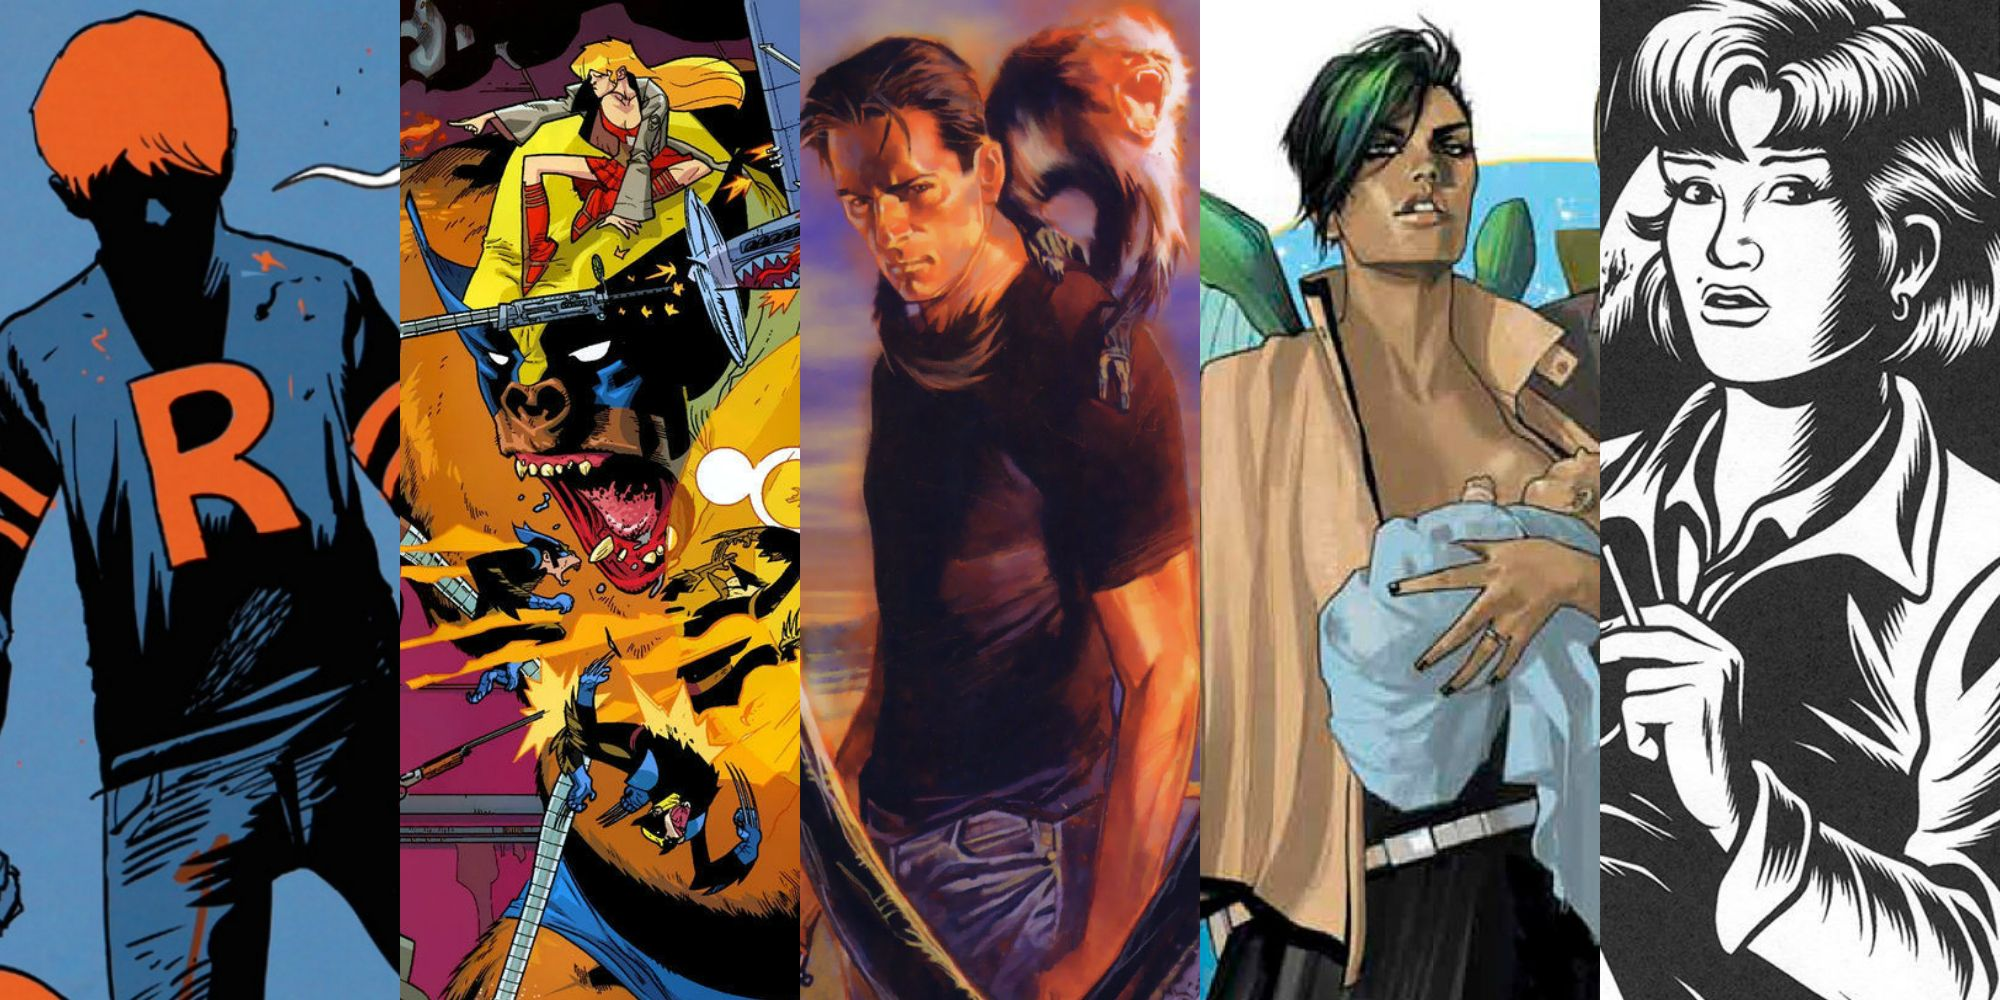 R-rated comic book adaptations